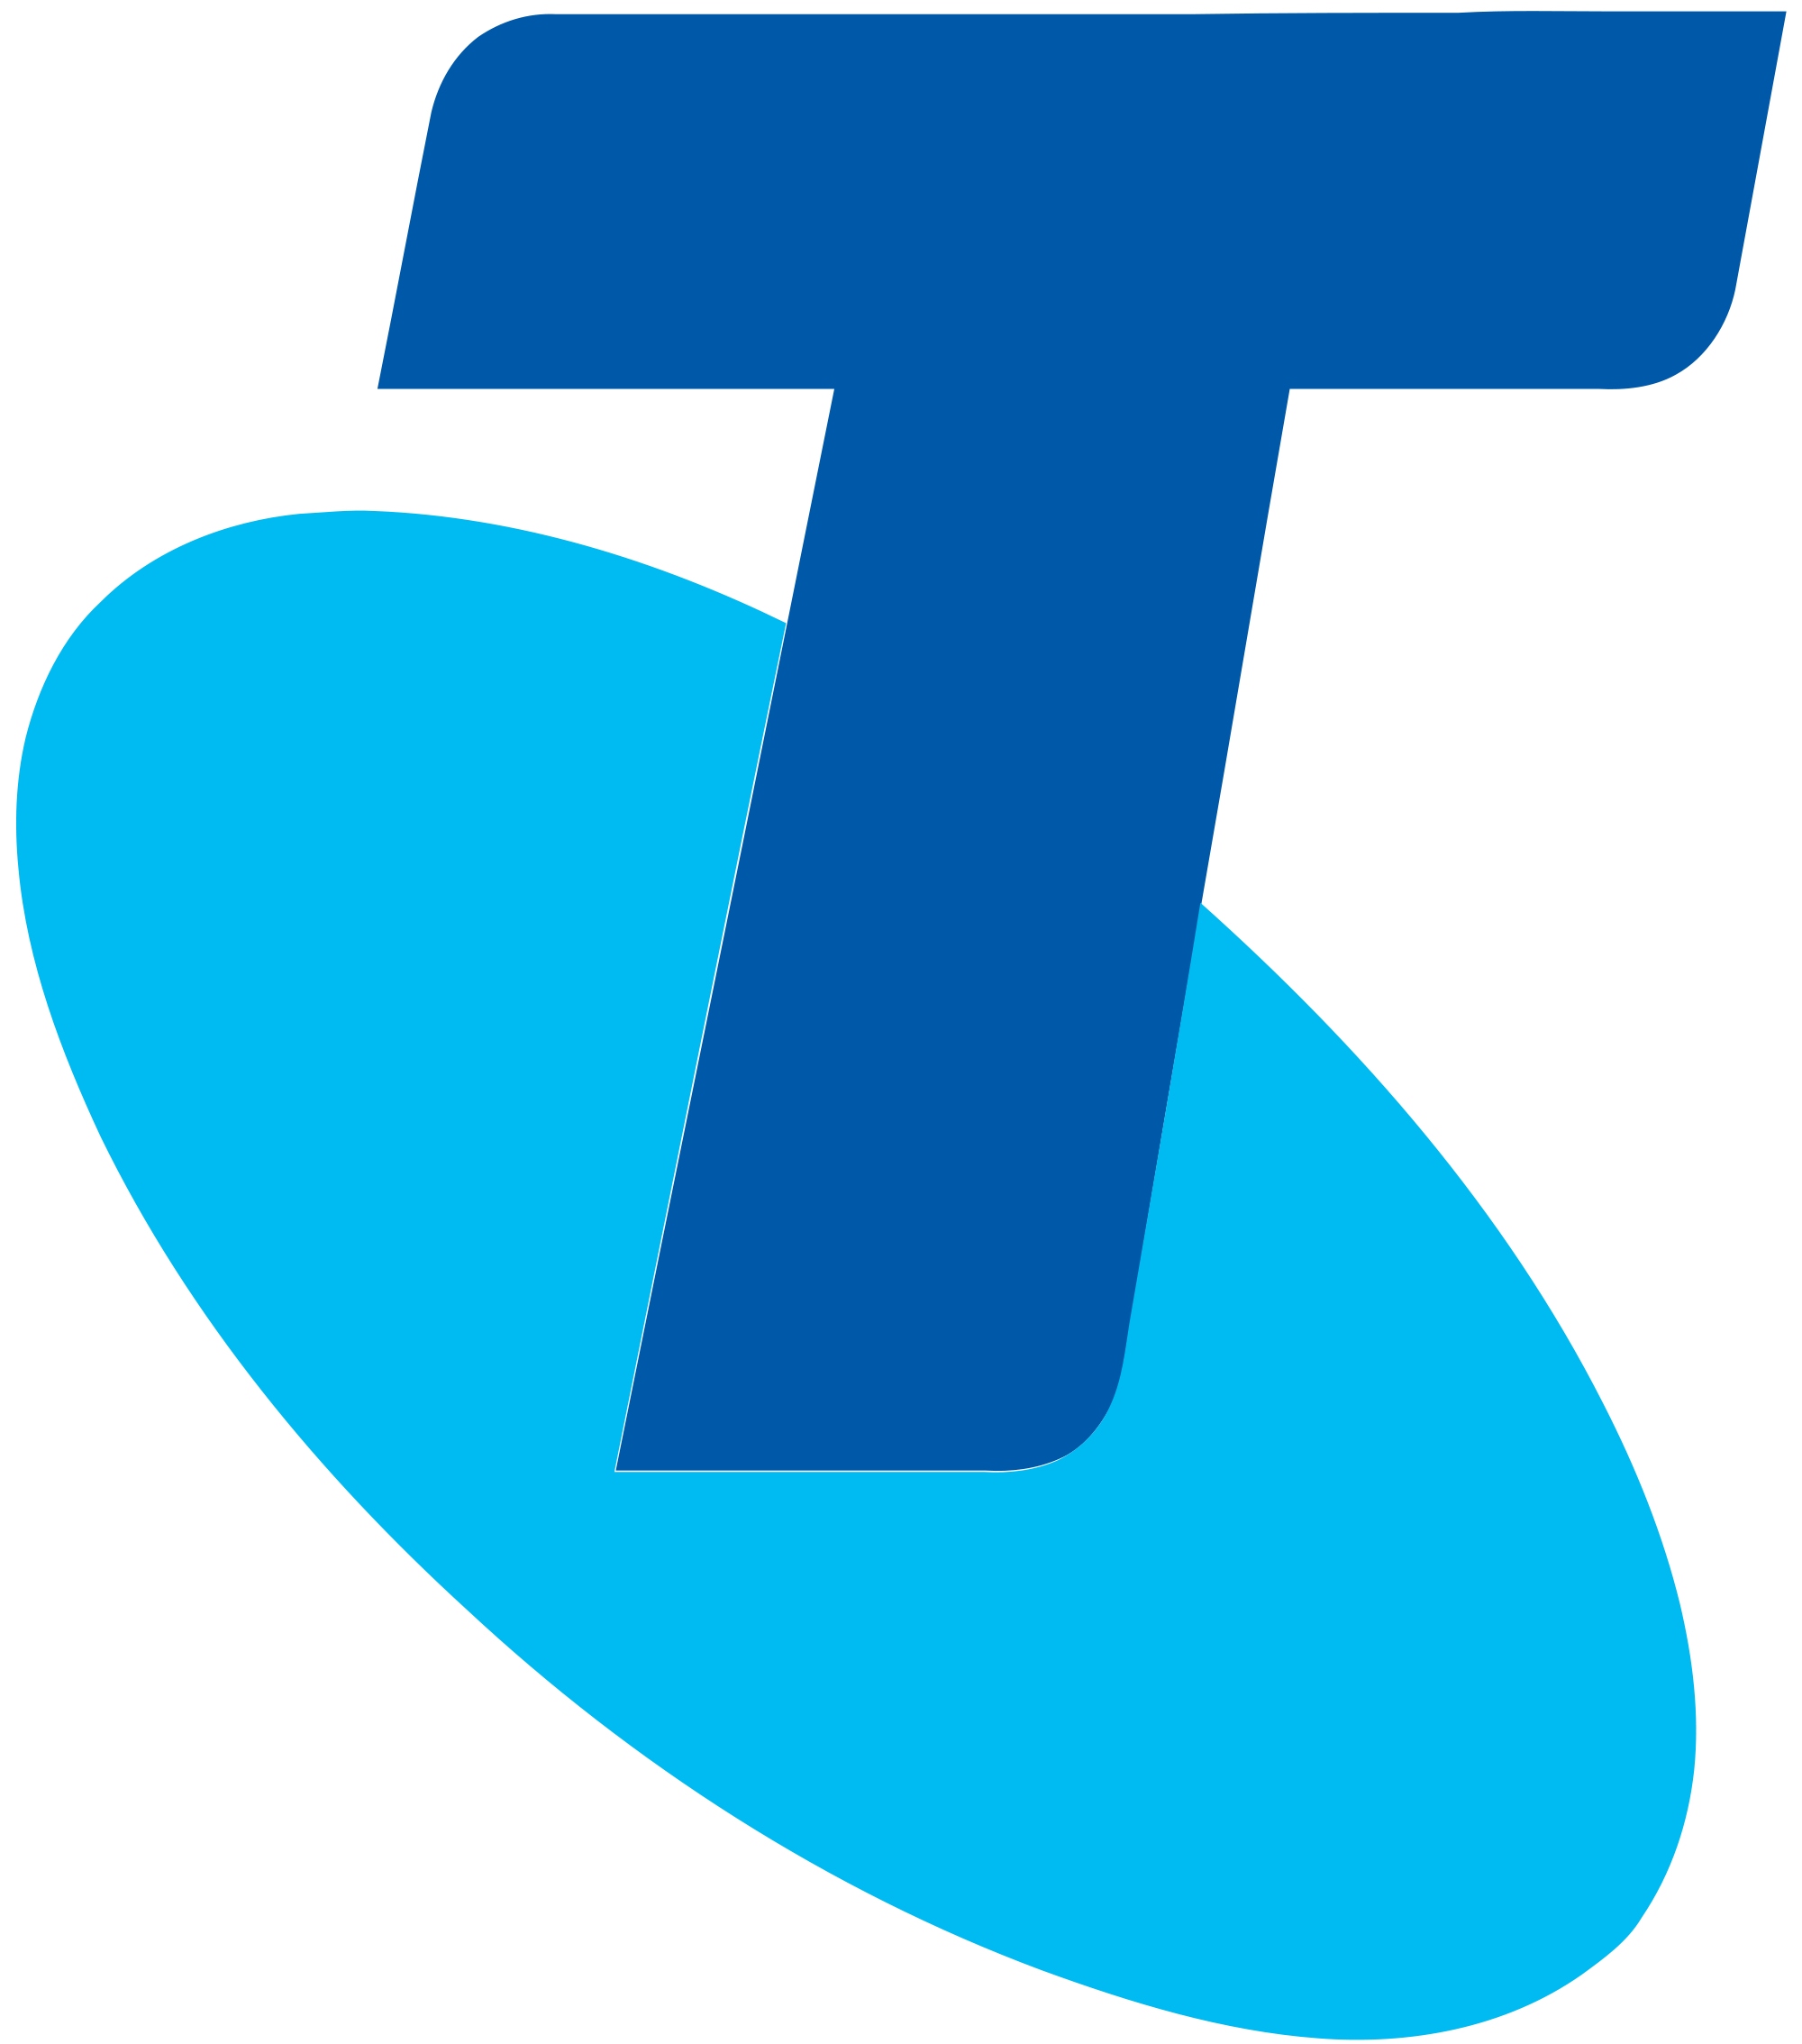 File telstra svg wikimedia. T transparent logo picture freeuse library